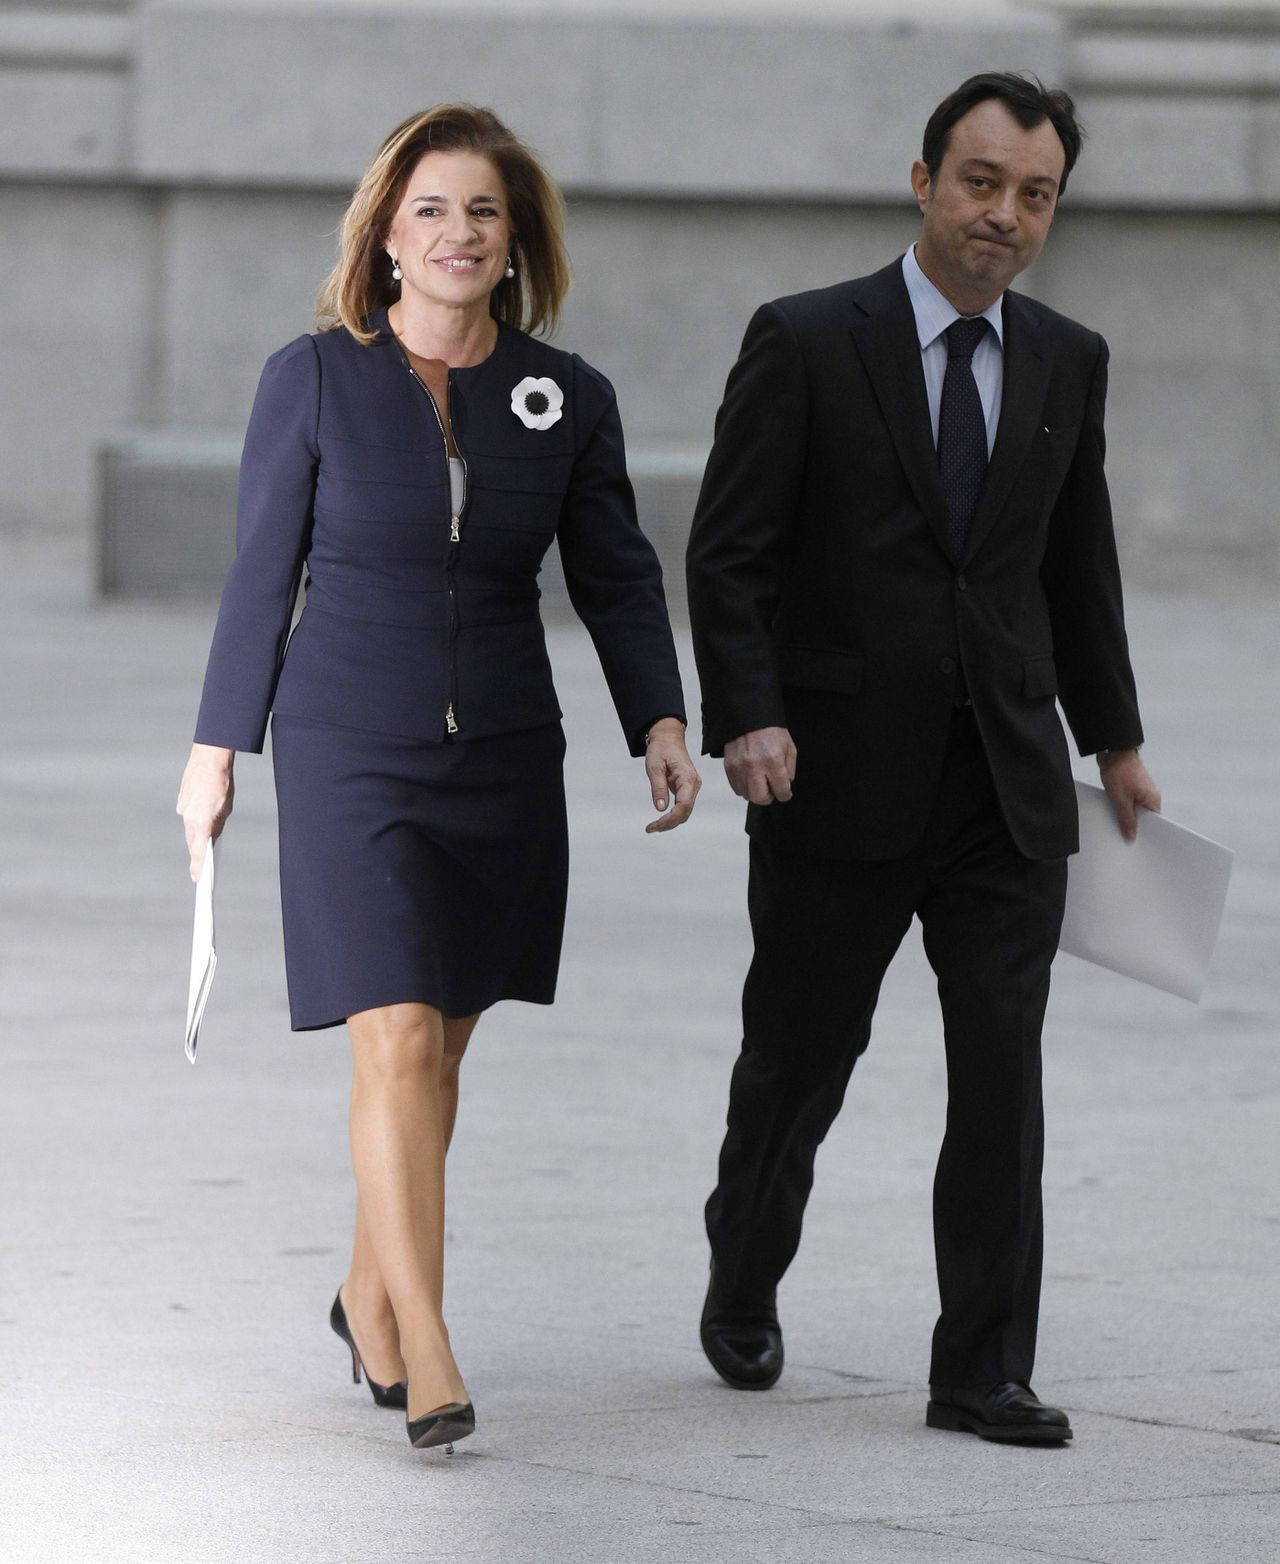 New Madrid Mayor Ana Botella (L), wife of former Spanish Prime Minister Jose Maria Aznar, arrives with Madrid Deputy Mayor Manuel Cobo for her swearing-in ceremony at Madrid's Town Hall December 27, 2011. REUTERS/Andrea Comas(SPAIN - Tags: POLITICS ELECTIONS)